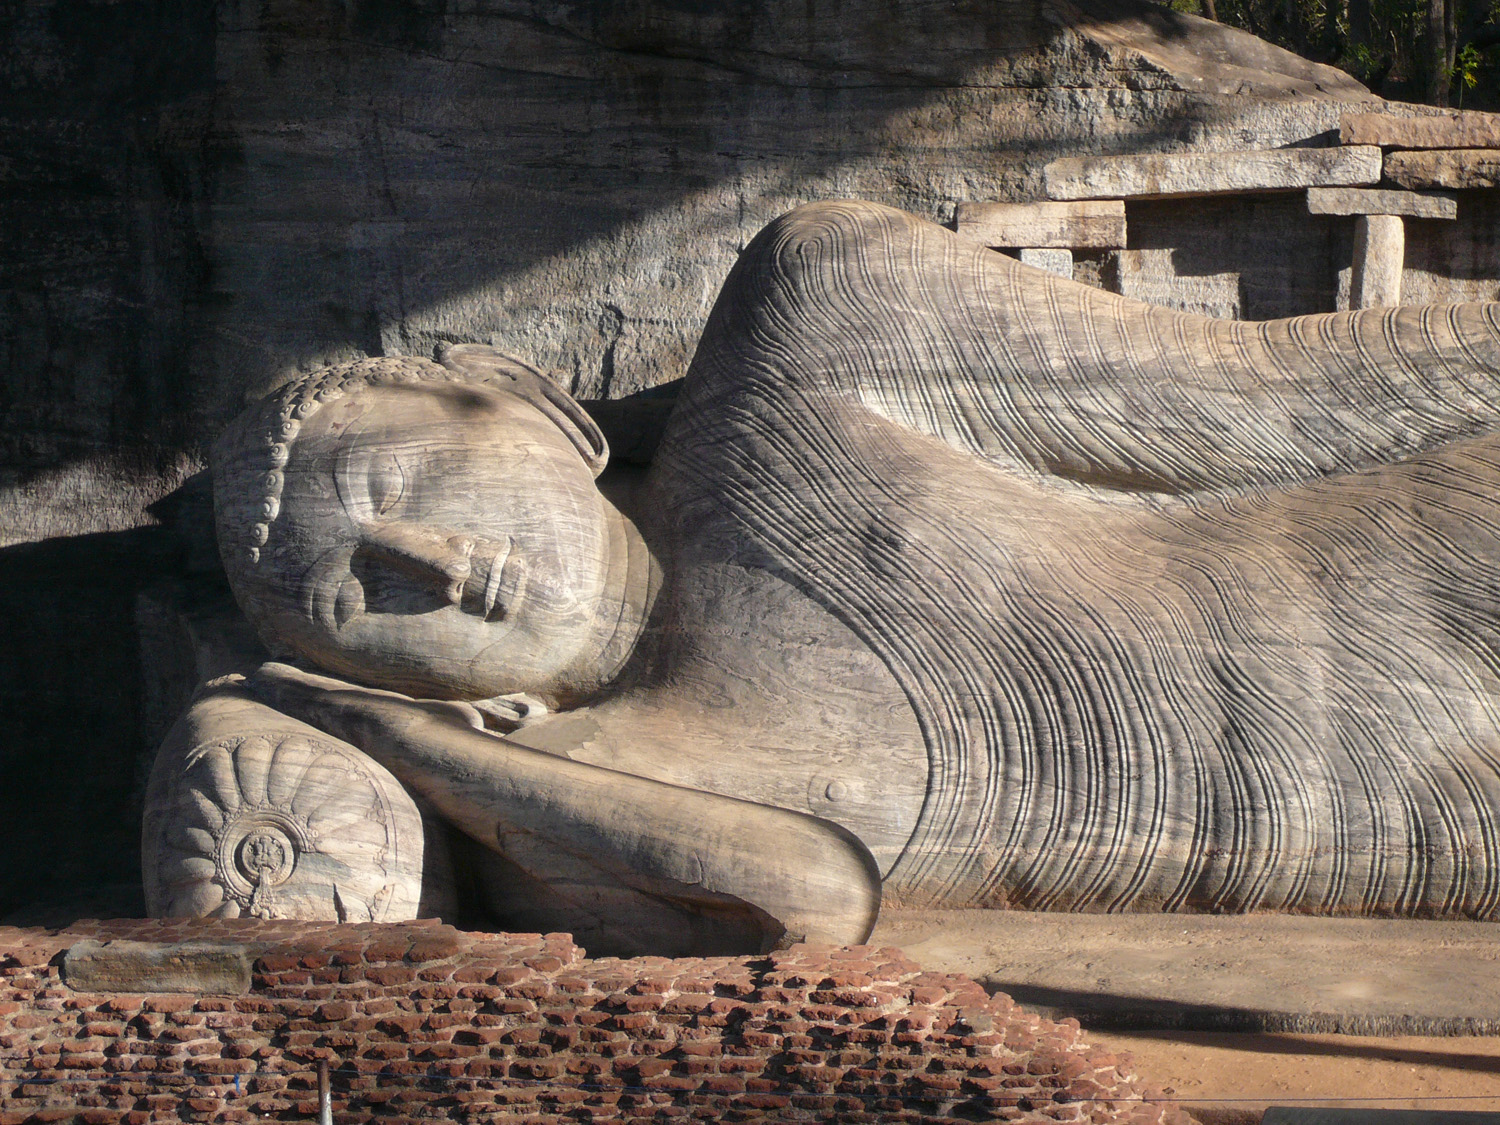 Reclining Buddha in Gal Vihara, Polonnaruwa. The picture is taken at a time when the shadow of the roof has not yet touched the image. Zoom in from quite a distance.